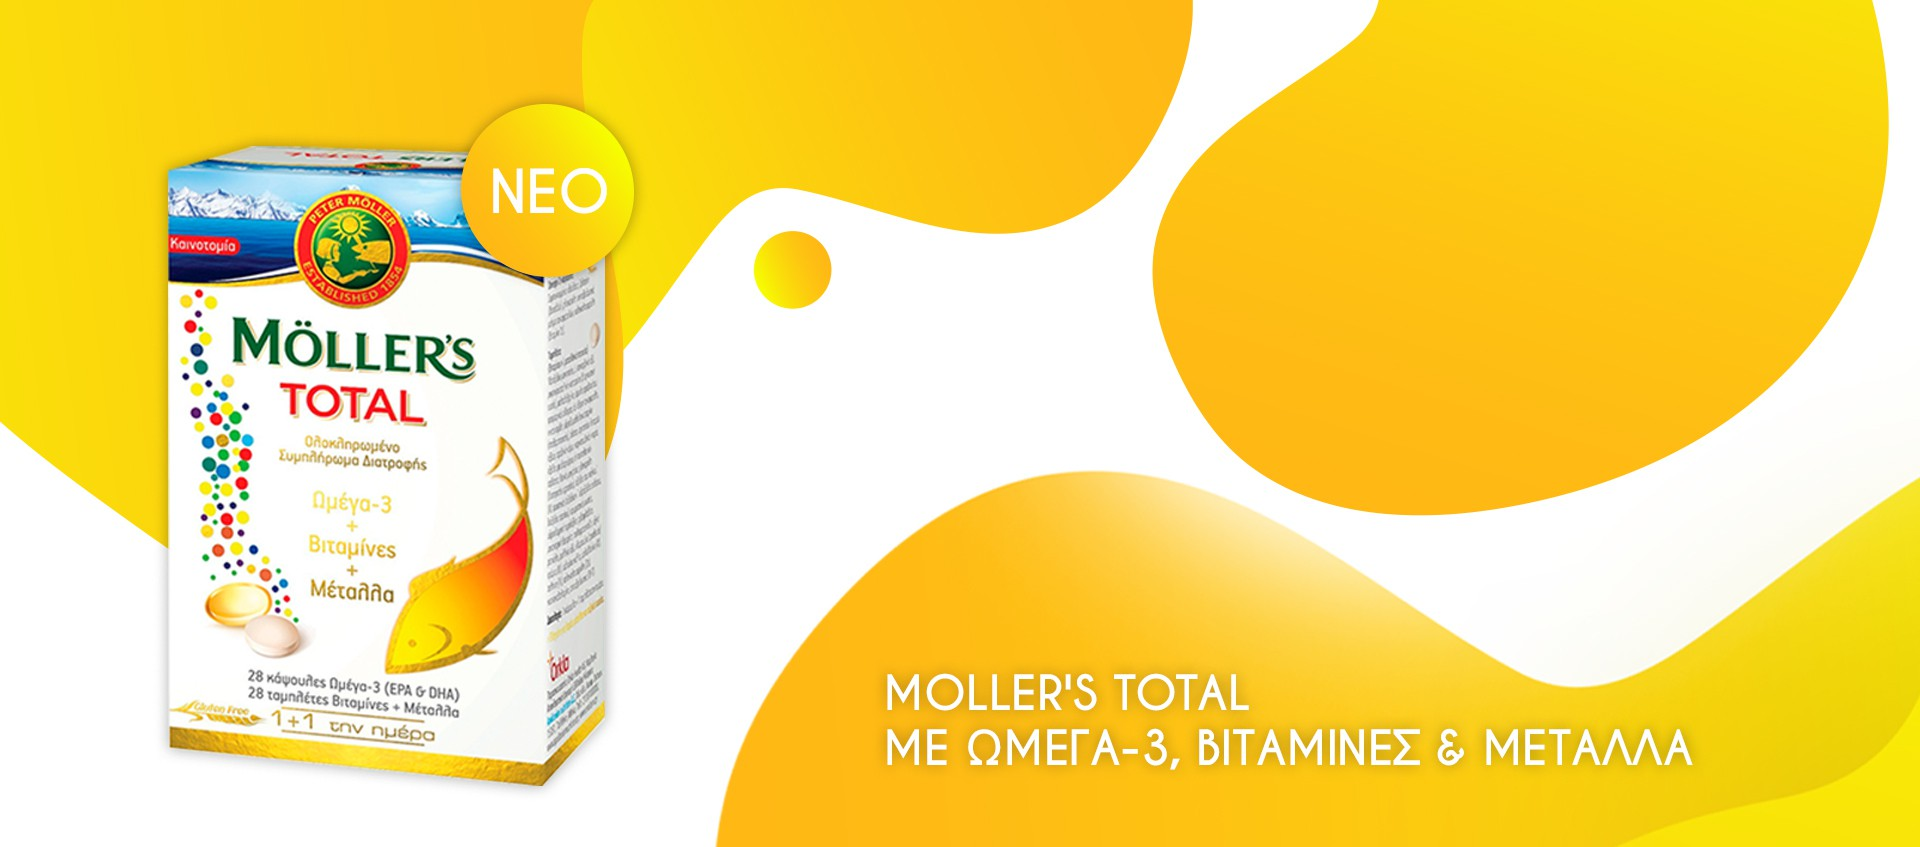 Neo mollers total